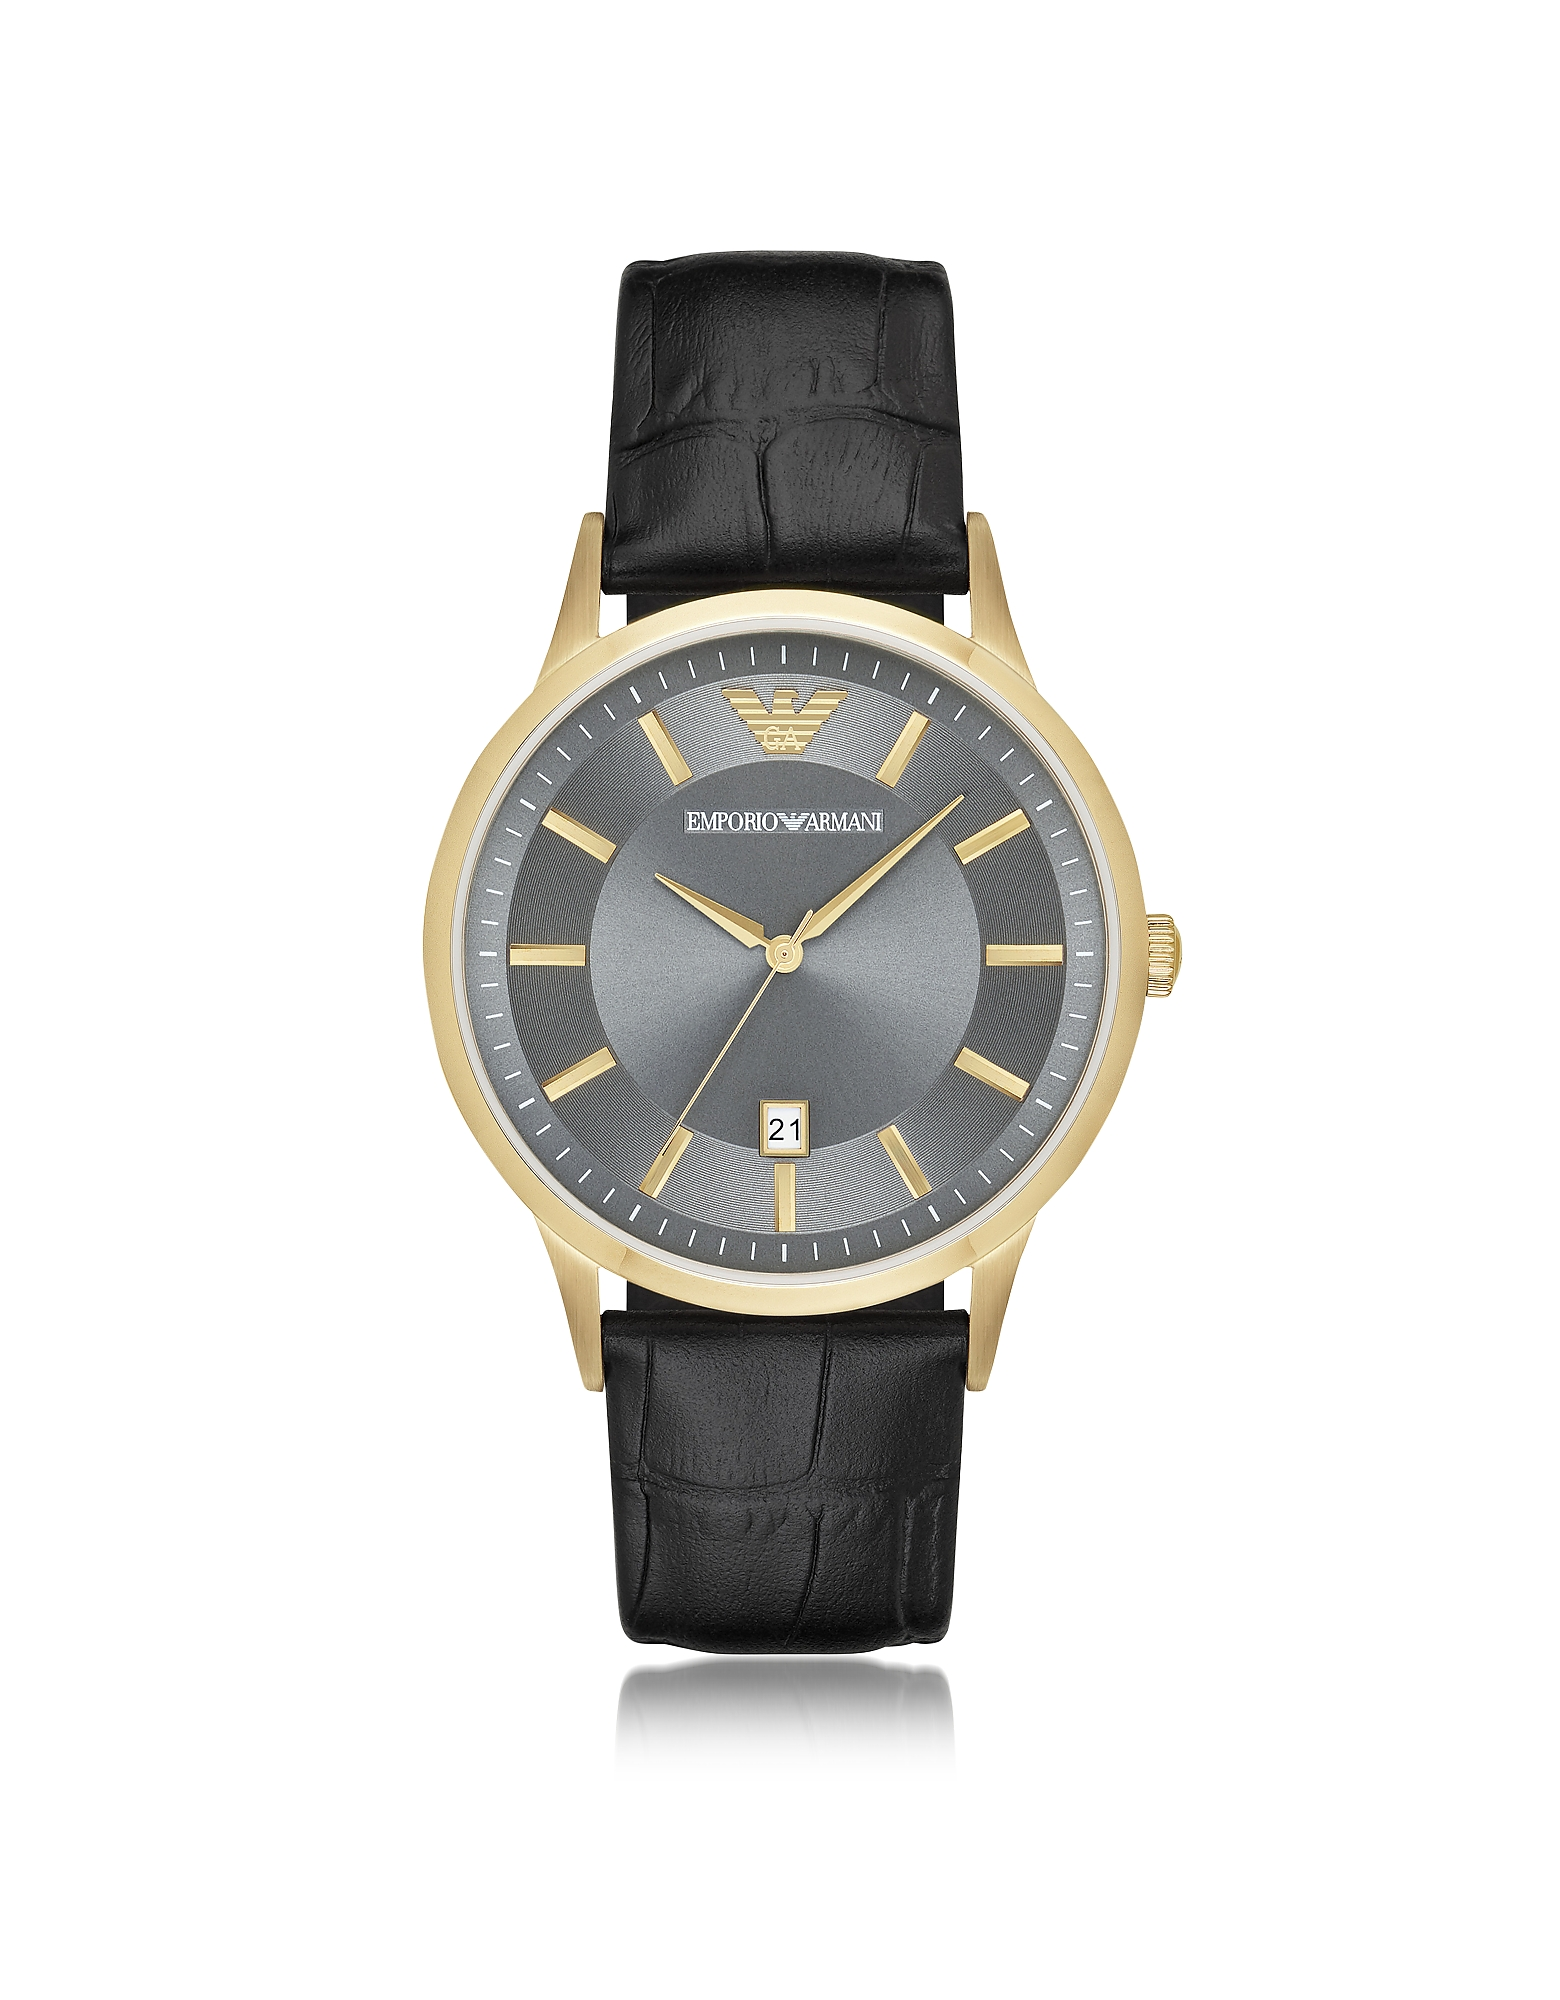 Gold-tone PVD Stainless Steel Men's Quartz Watch w/Croco Embossed Leather Strap Emporio Armani